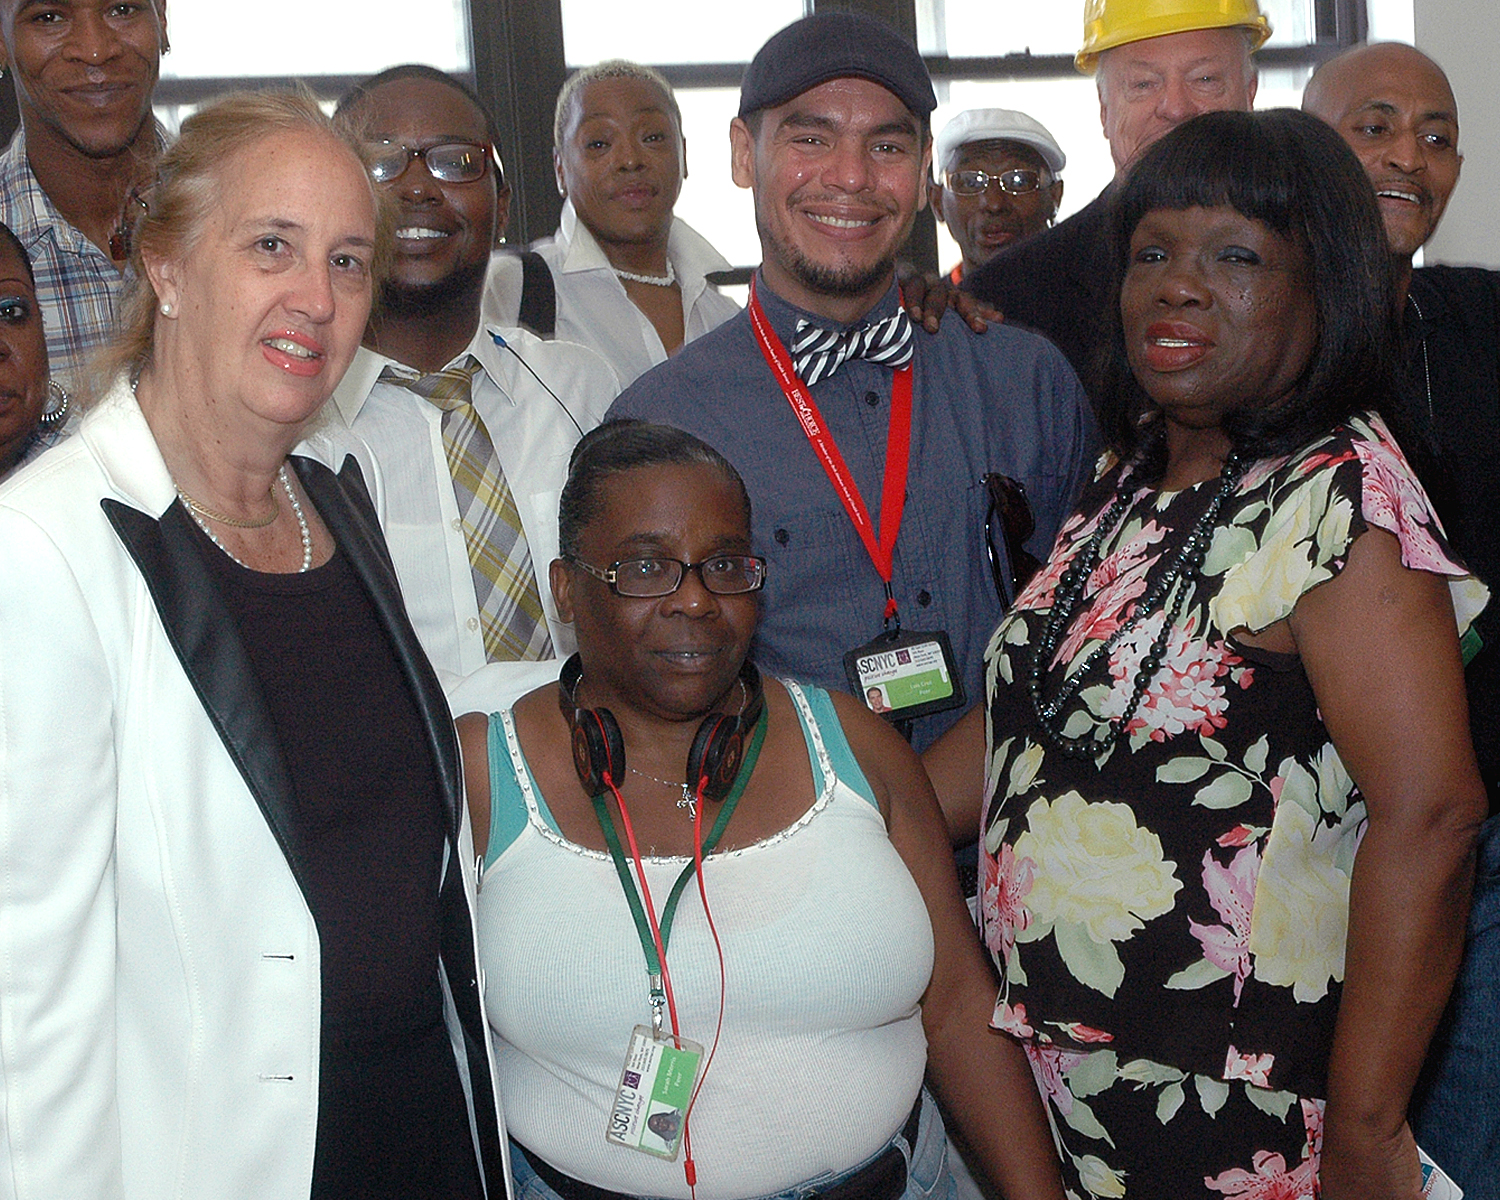 Gale A. Brewer, Manhattan Borough President with ASCNYC Peer Educators